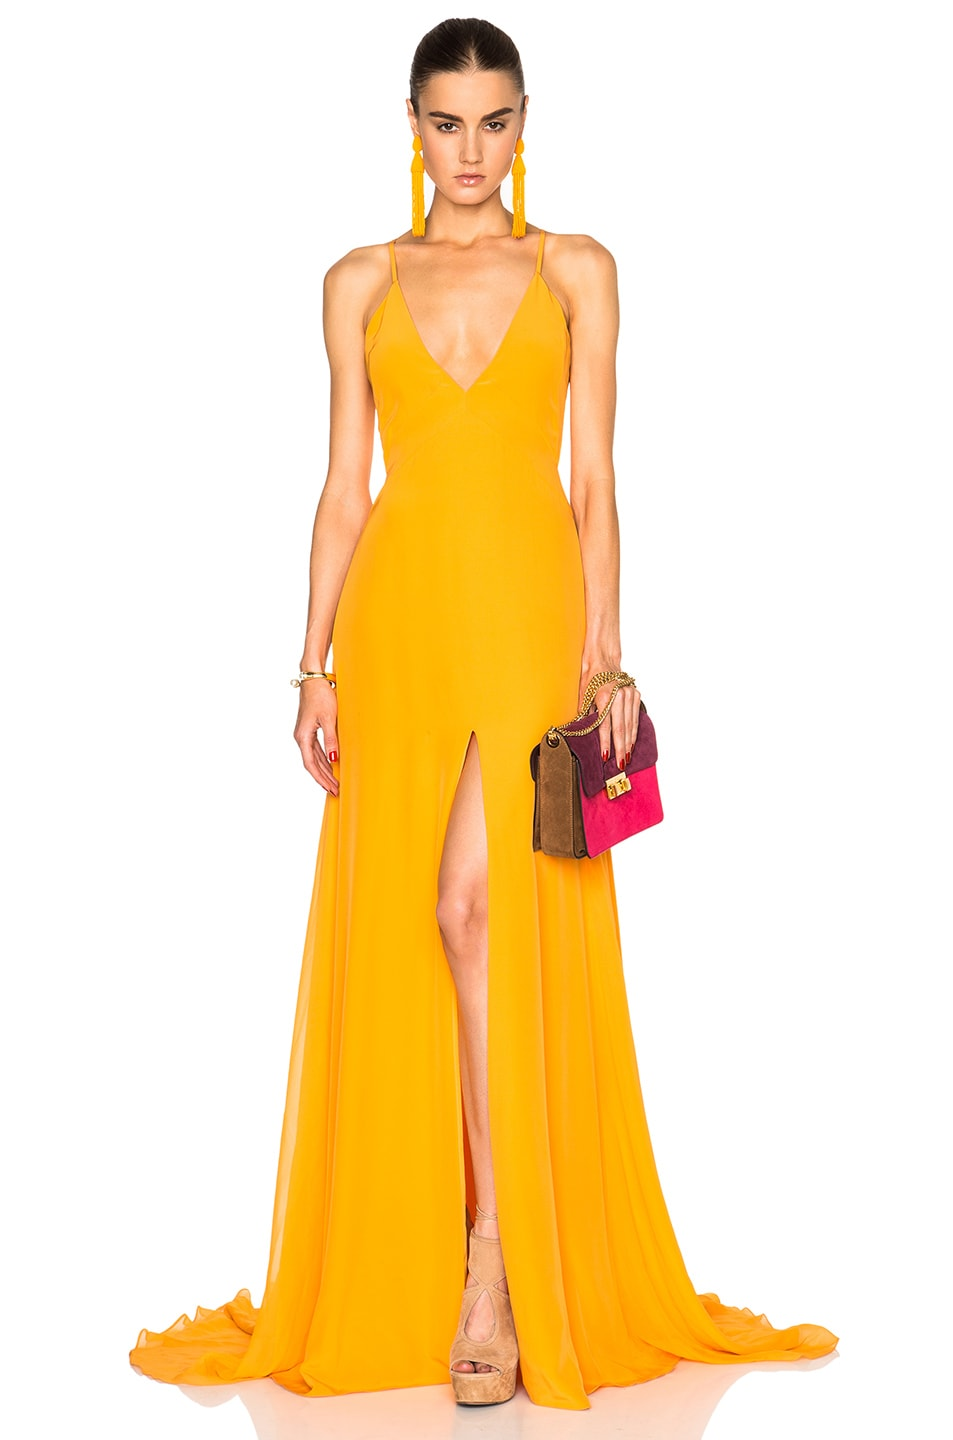 Prabal Gurung Charmeuse Gown in Saffron | FWRD